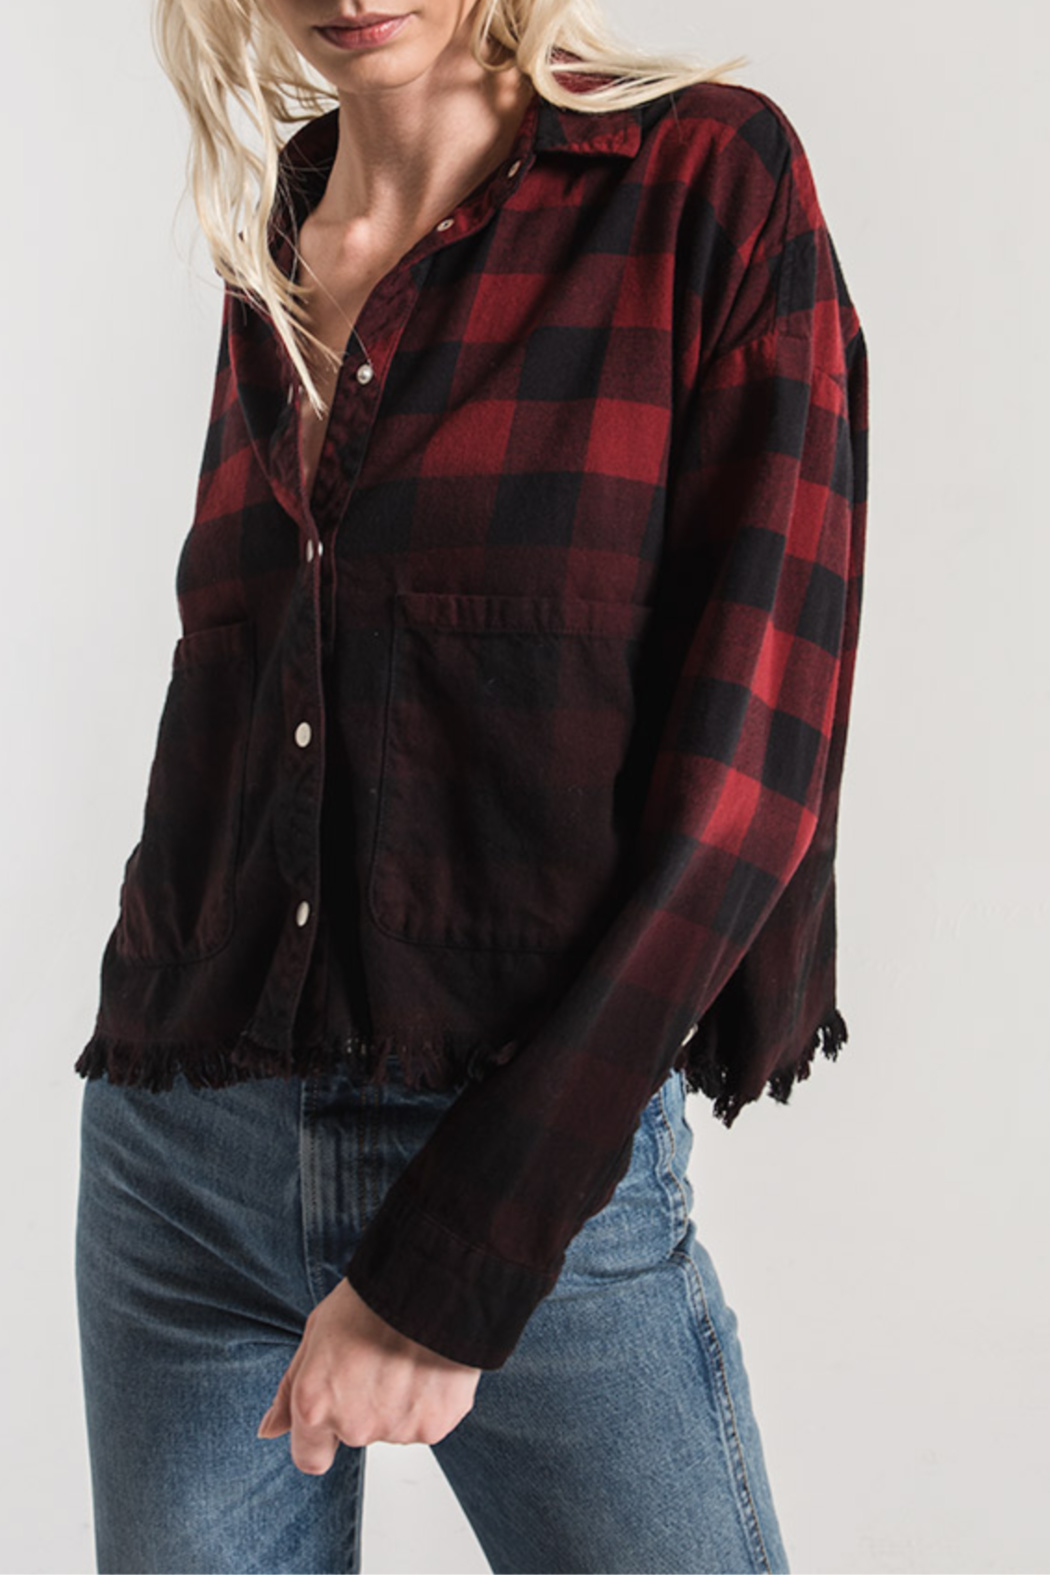 White Crow Benson Flannel Crop Top/Jacket - Front Full Image